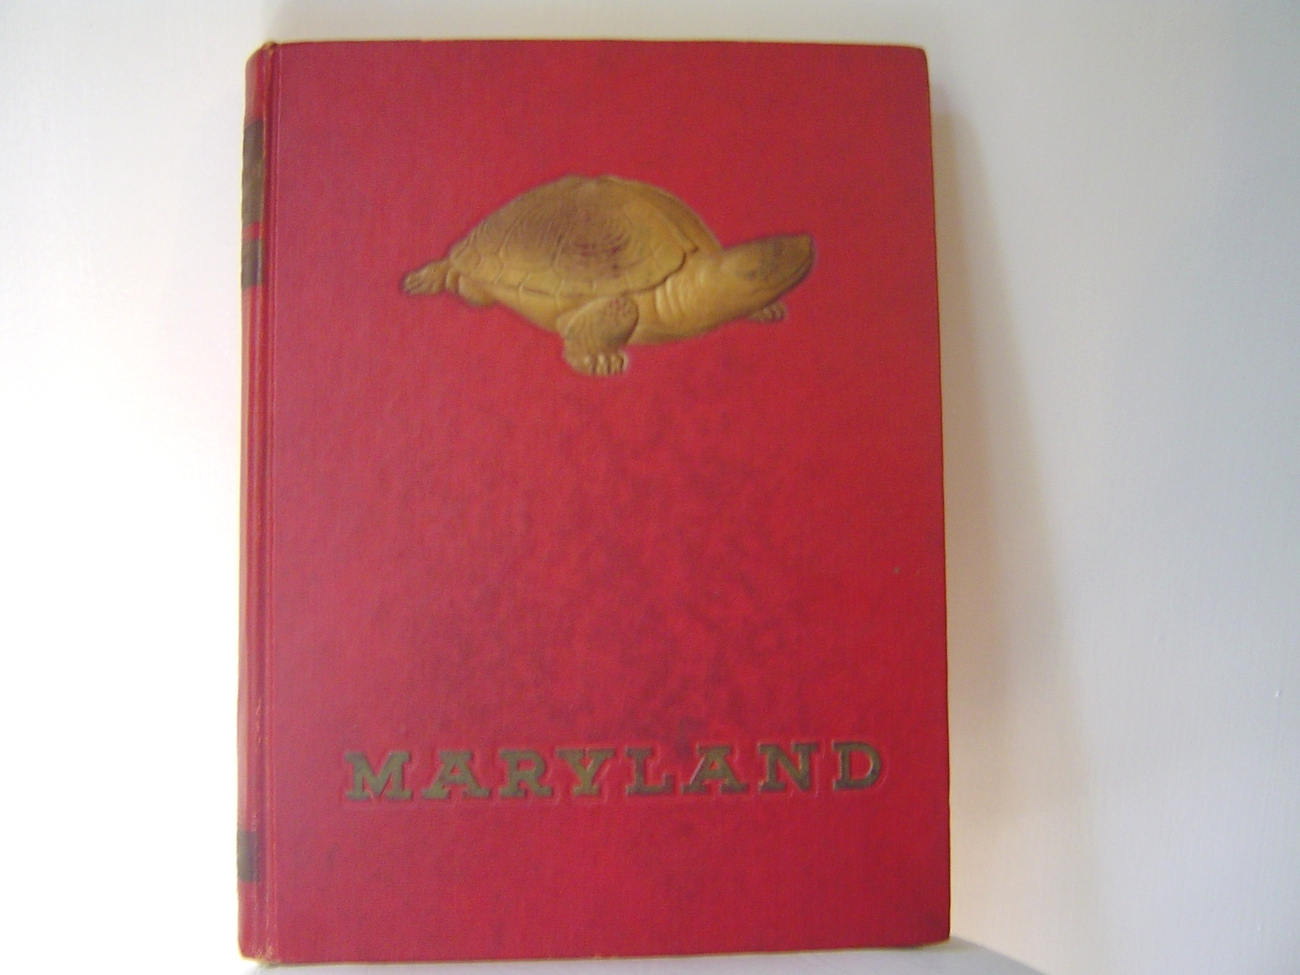 University of Maryland 1948 Yearbook The Terrapin